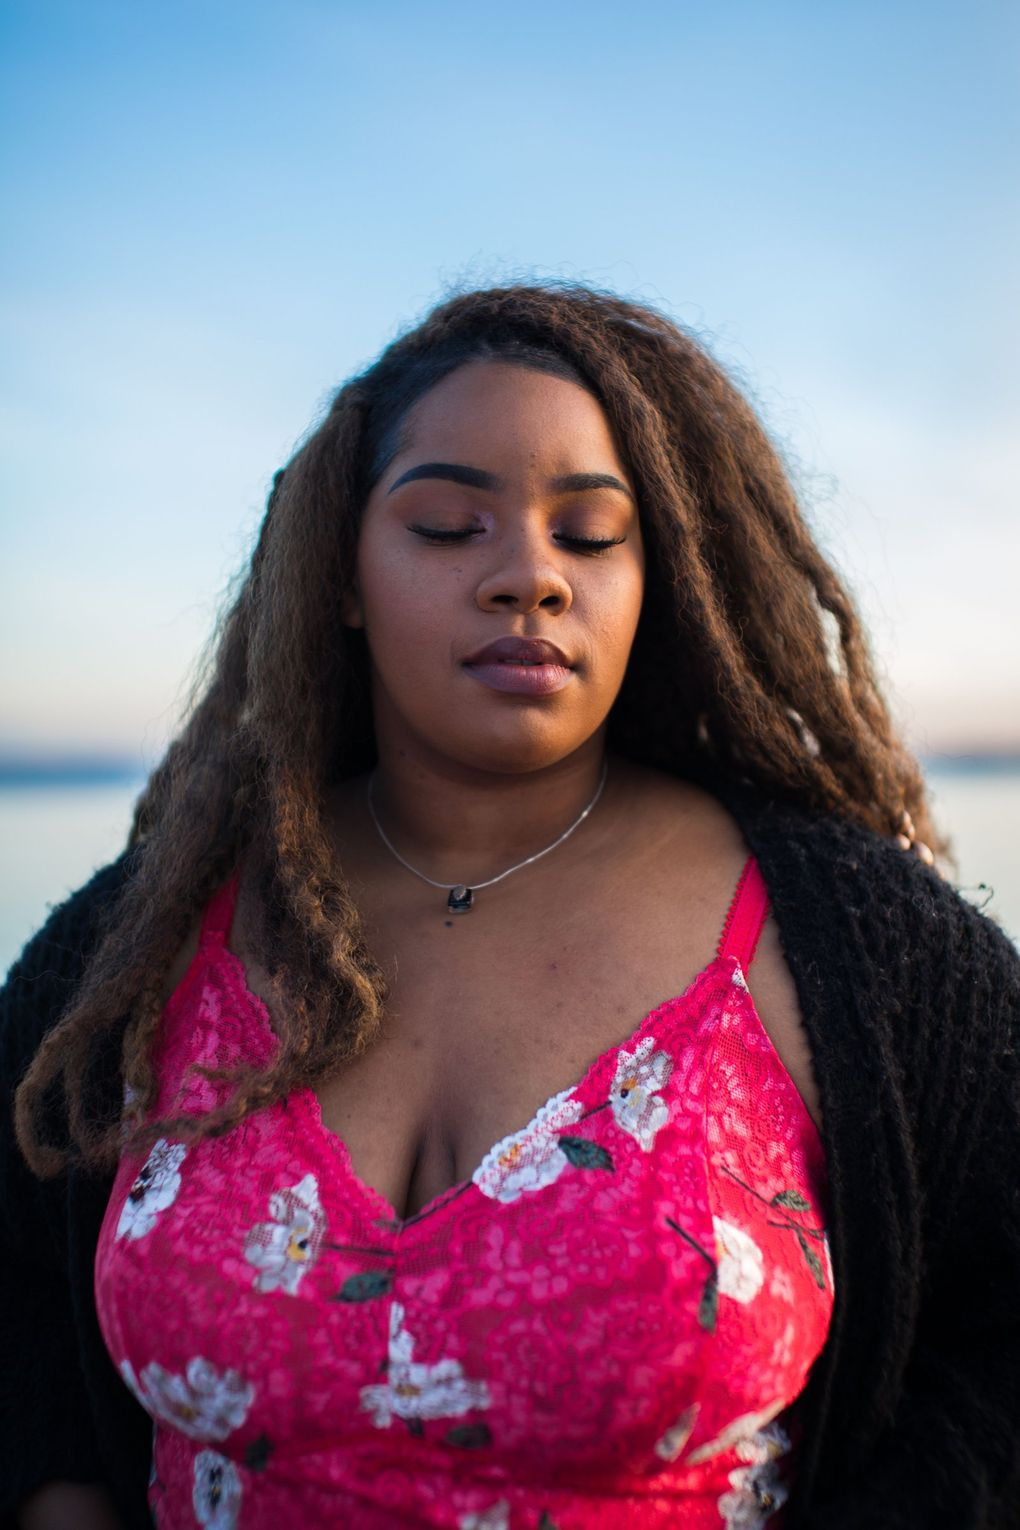 A self-taught audio engineer by day, R&B singer/producer Talaya. helps other artists with their projects while also working on her own music. (Rolando Robles)